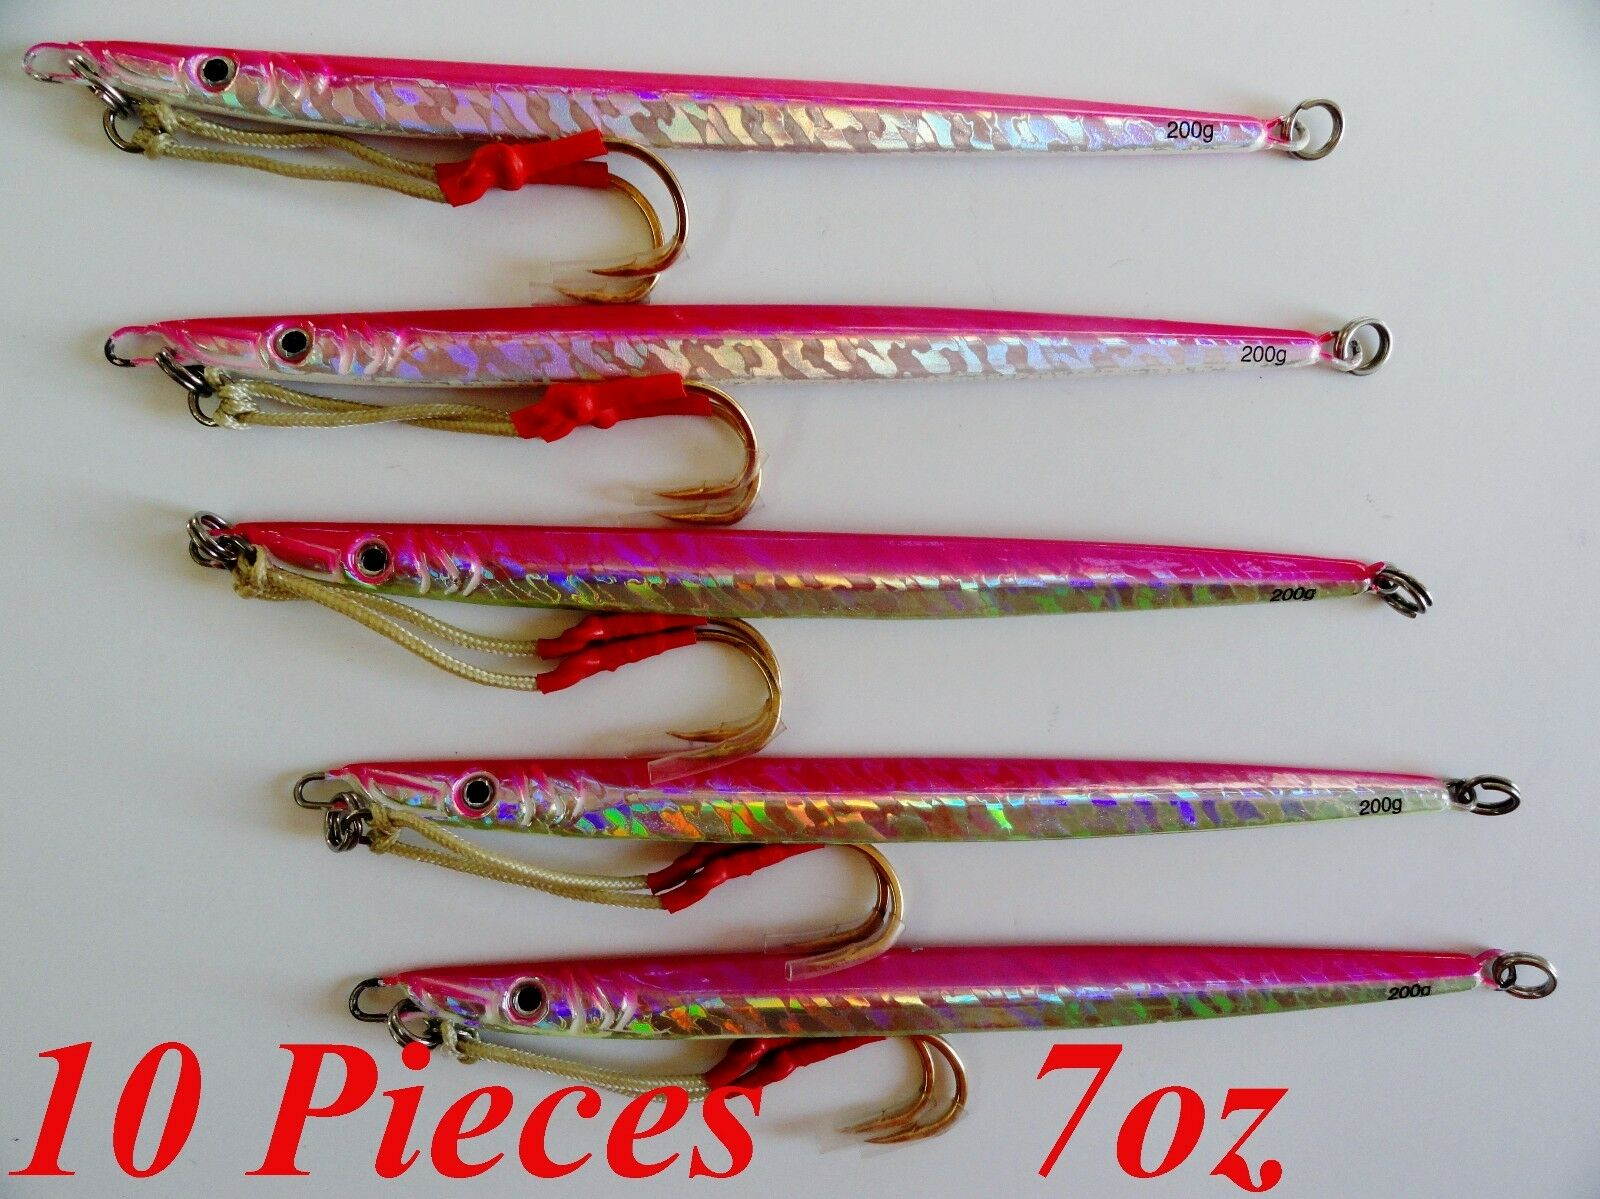 10 pcs Knife Jigs 7oz 200g  Pink 9  greenical Speed Saltwater Fishing Lures  here has the latest